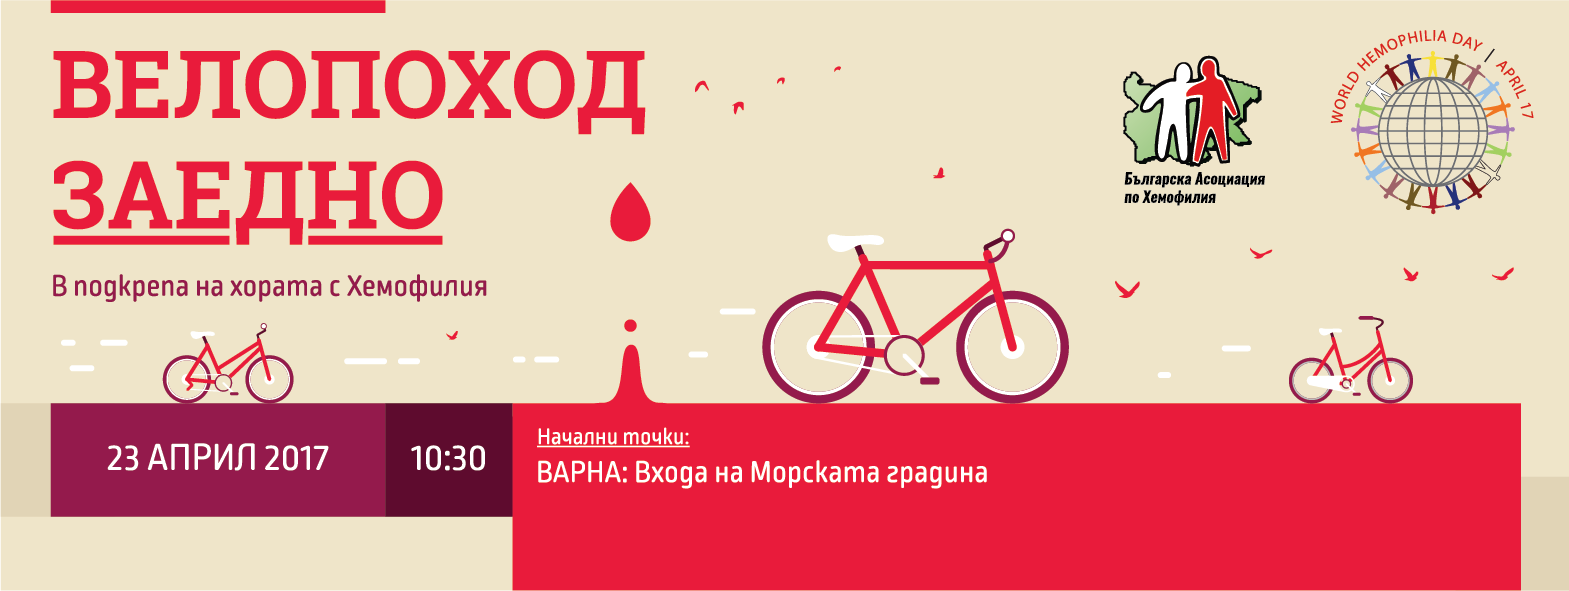 """Bulgarian Association for Hemophilia presents: Cycling tour """"TOGETHER"""""""